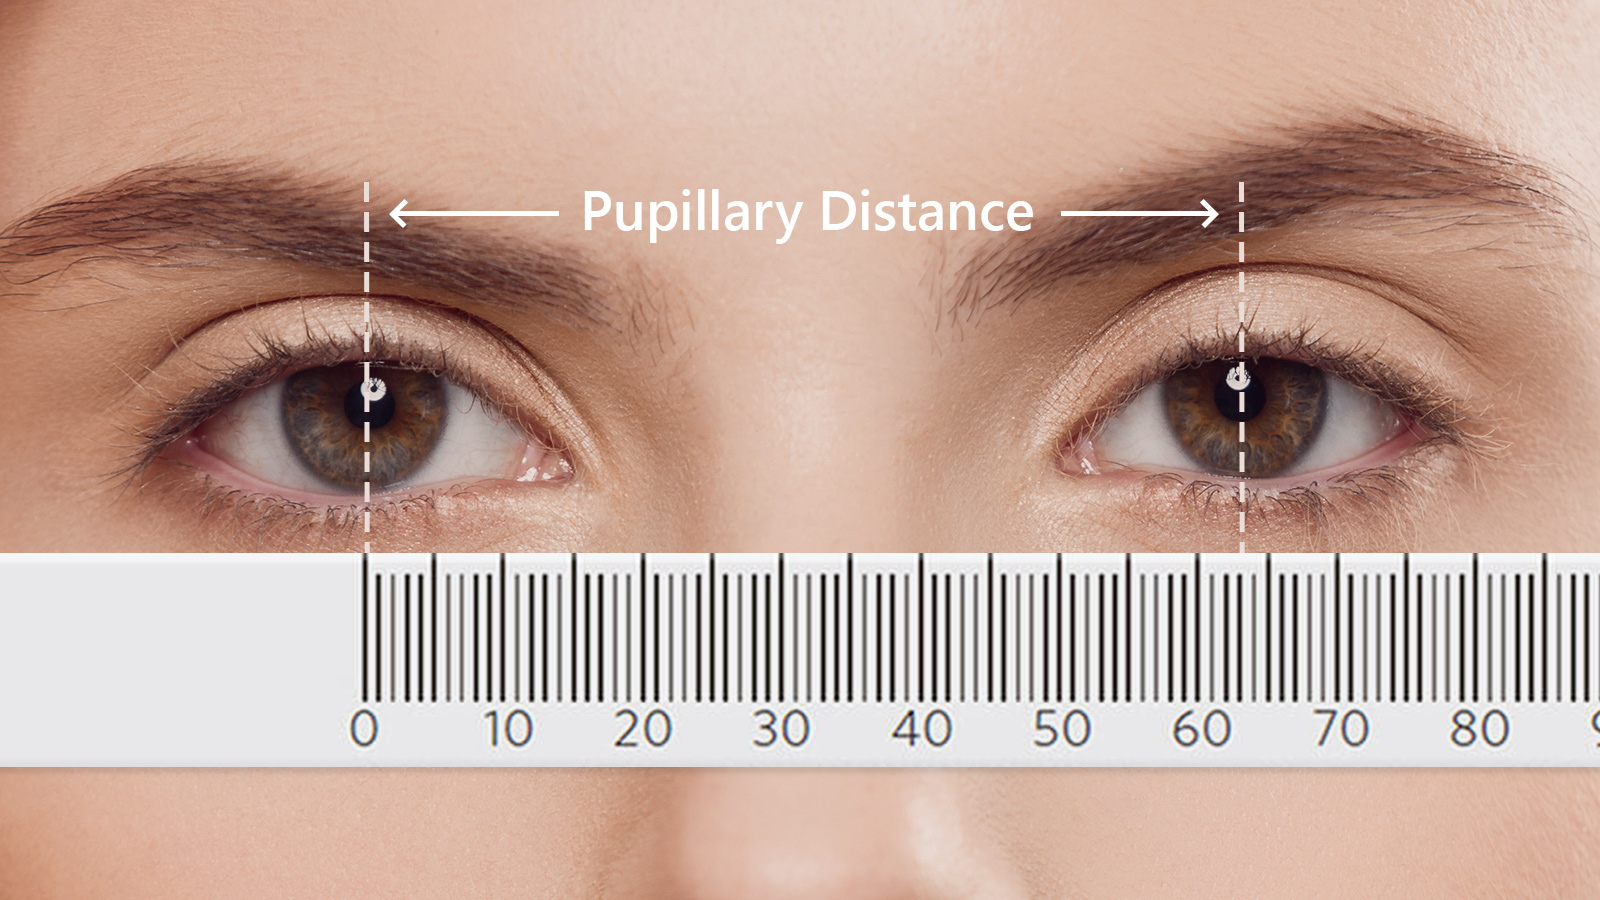 All about pupillary distance and its uses